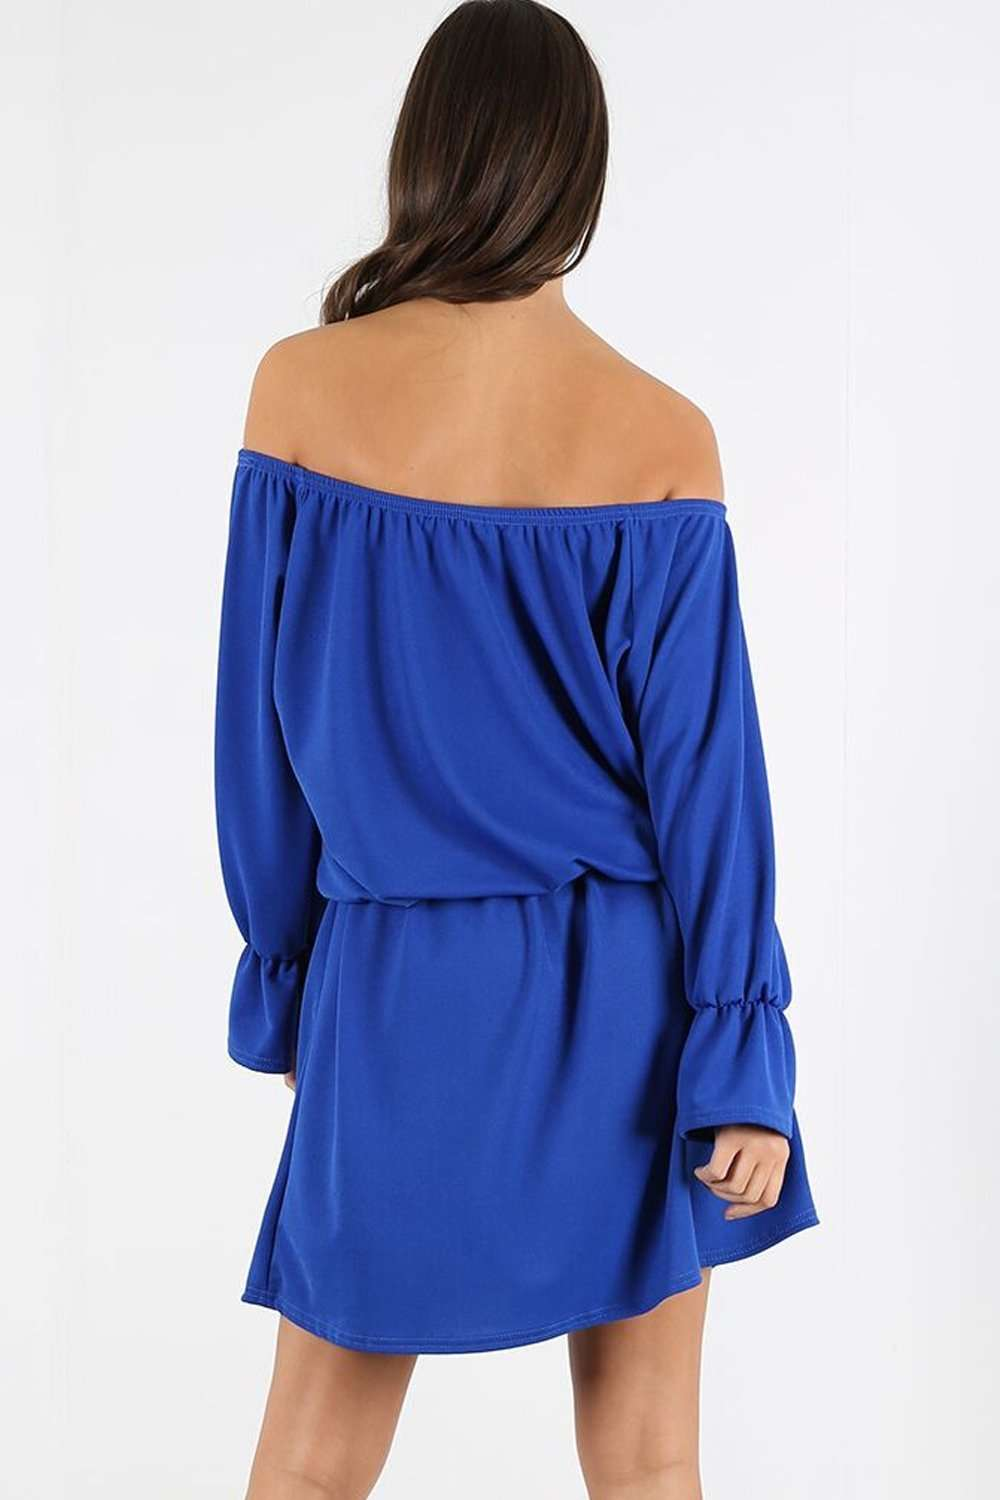 Janet Off Shoulder Long Sleeve Midi Dress - bejealous-com